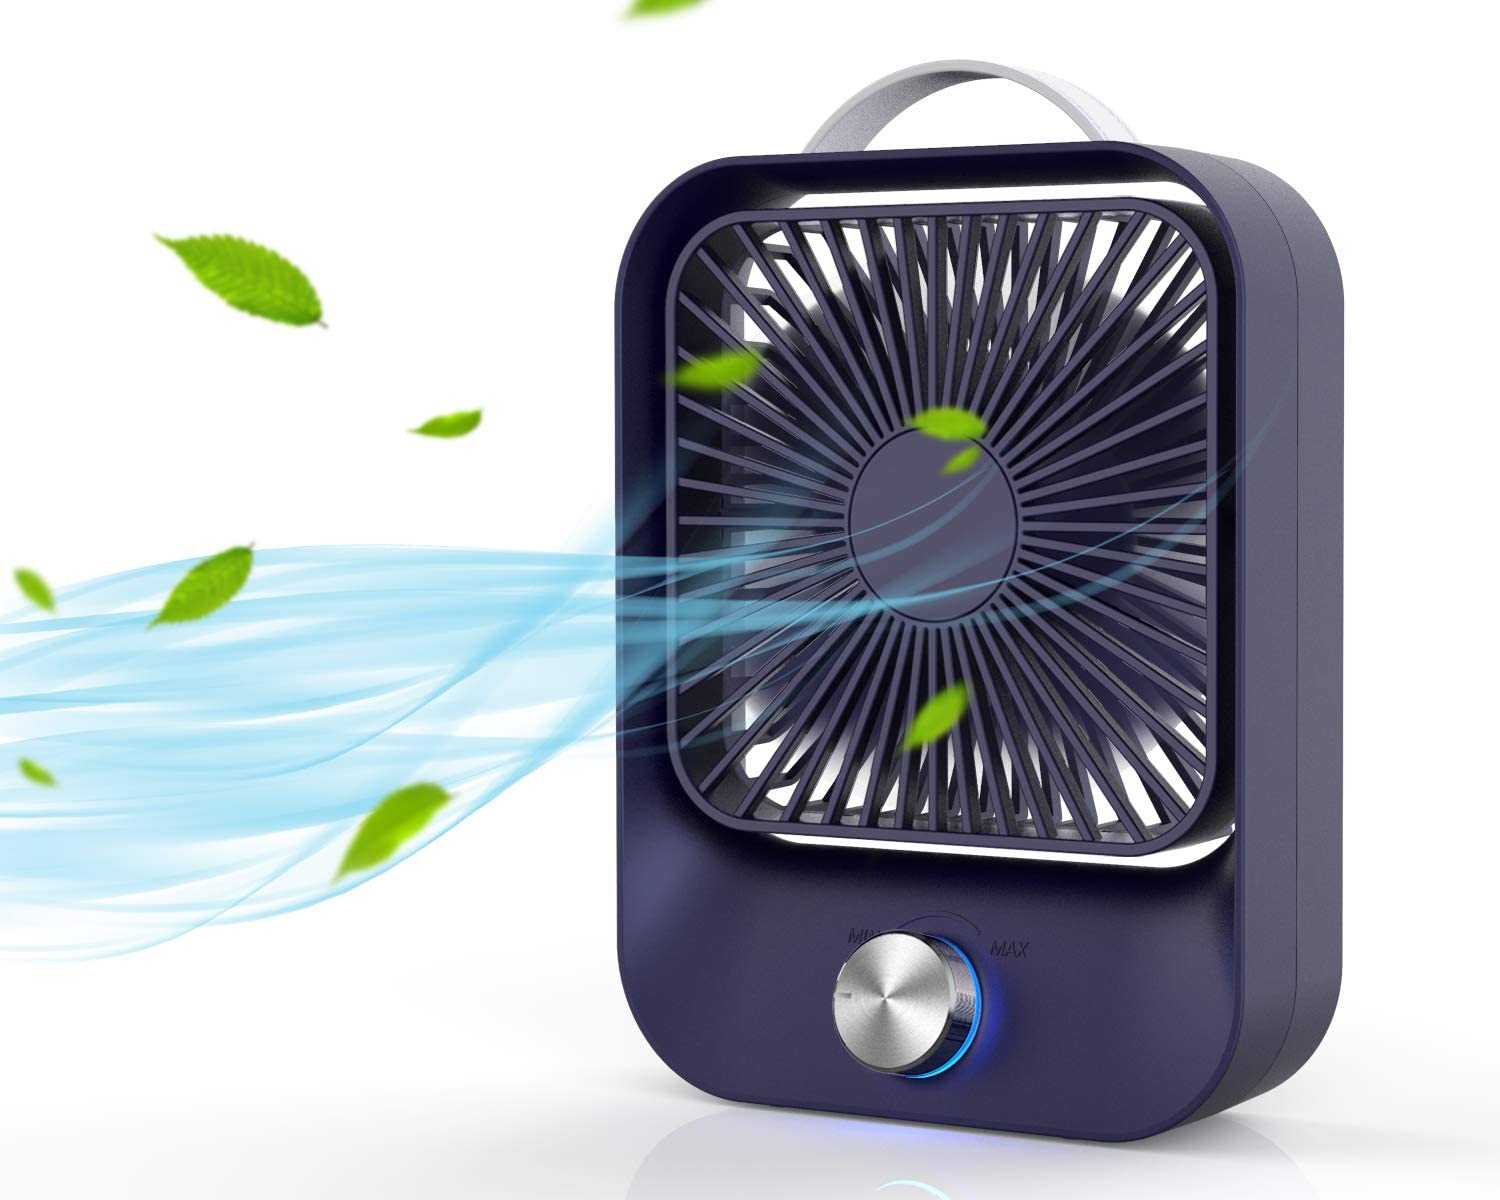 USB Desk Fan Rechargeable Personal Fan with Stepless Speed Control,45°Rotation Air Circulator for Office,Camping,Indoor or Outdoor